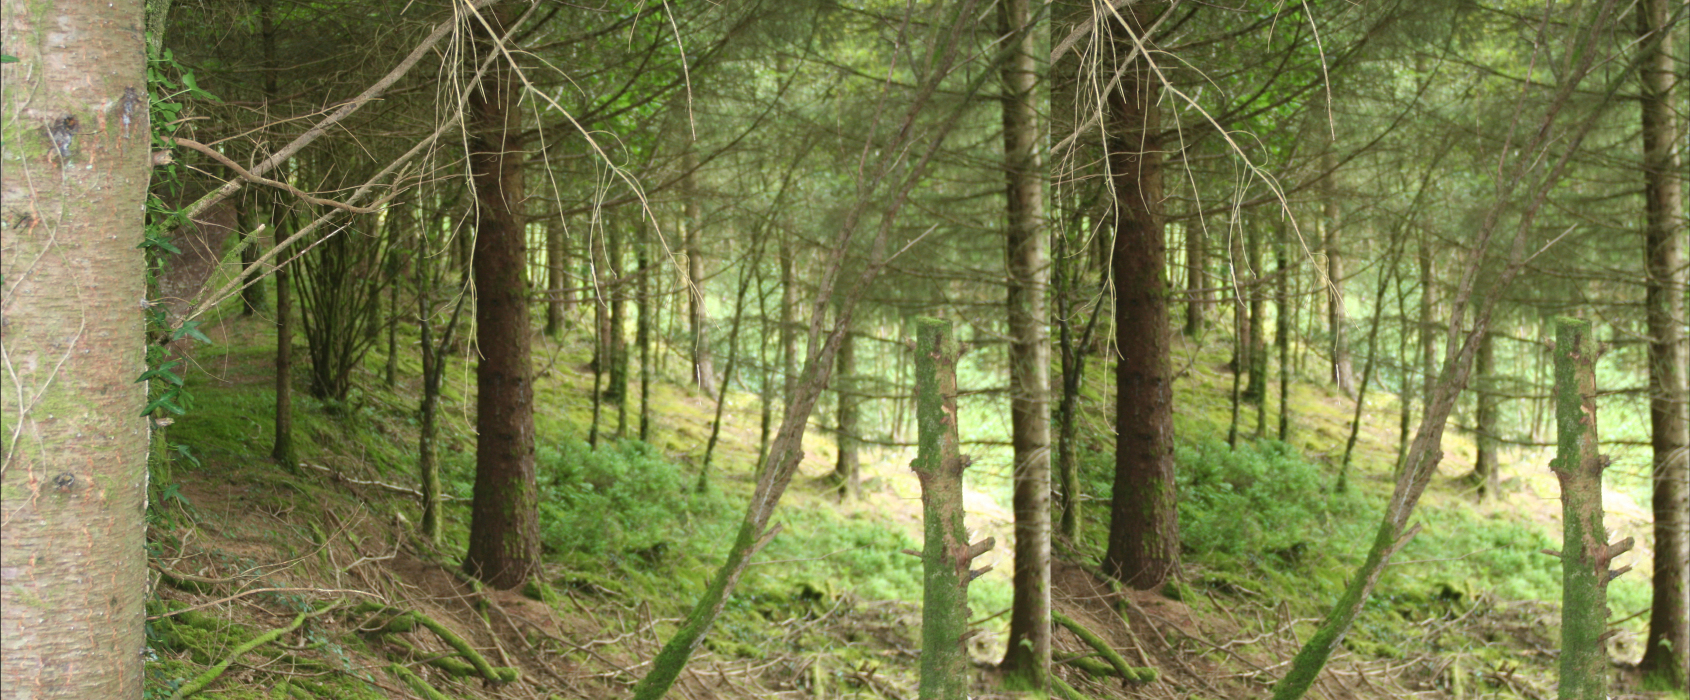 IMG_8jk263-PHOTOMONTAGE-FOREST-700H